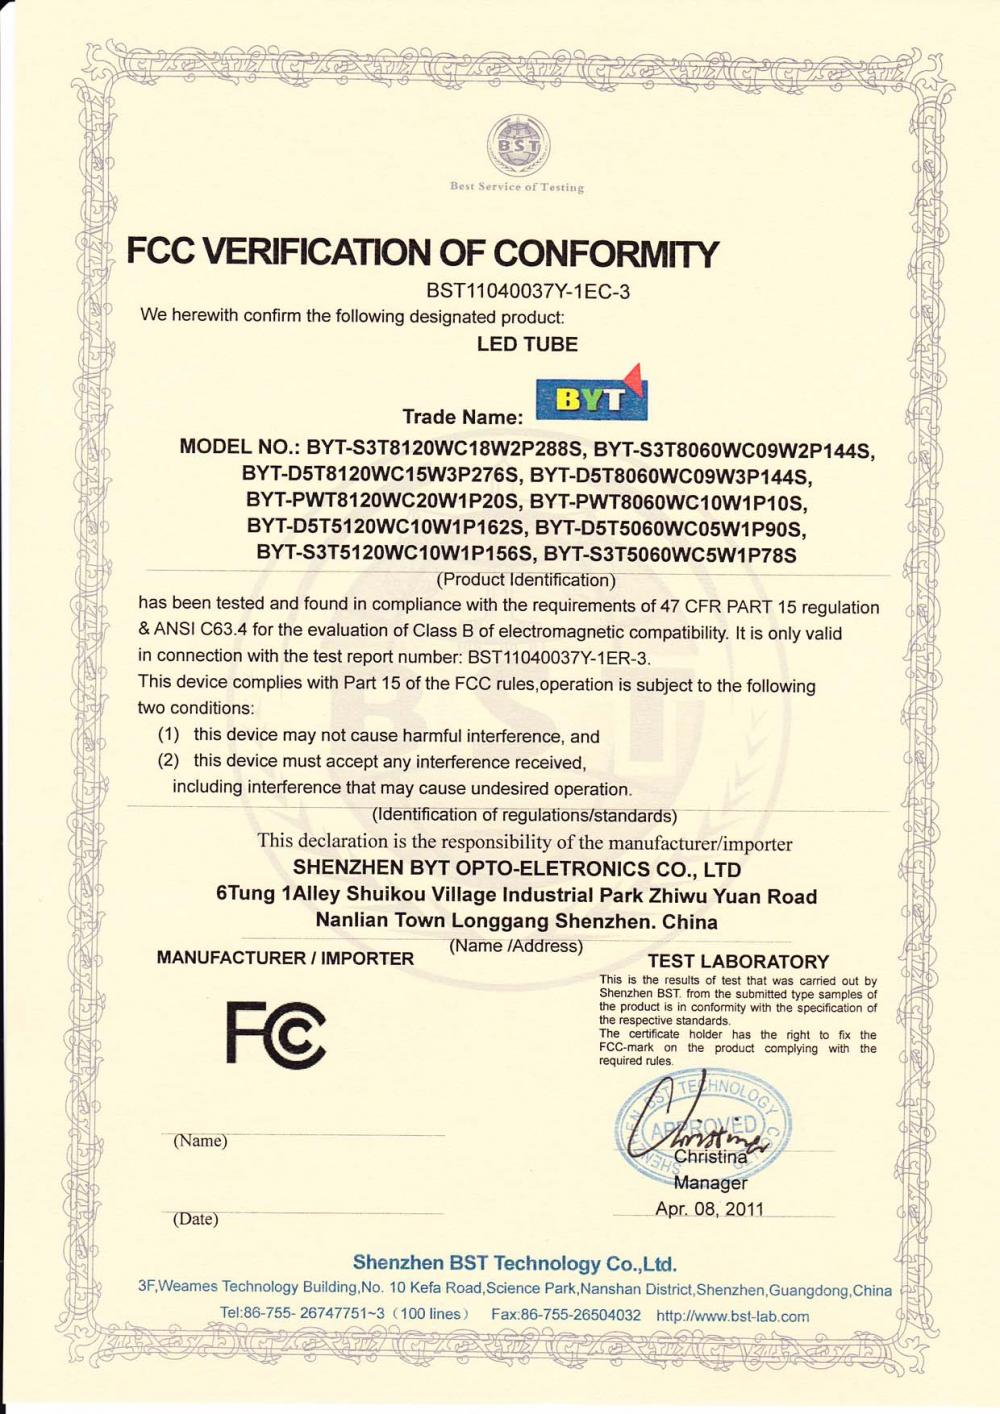 Certification of FCC